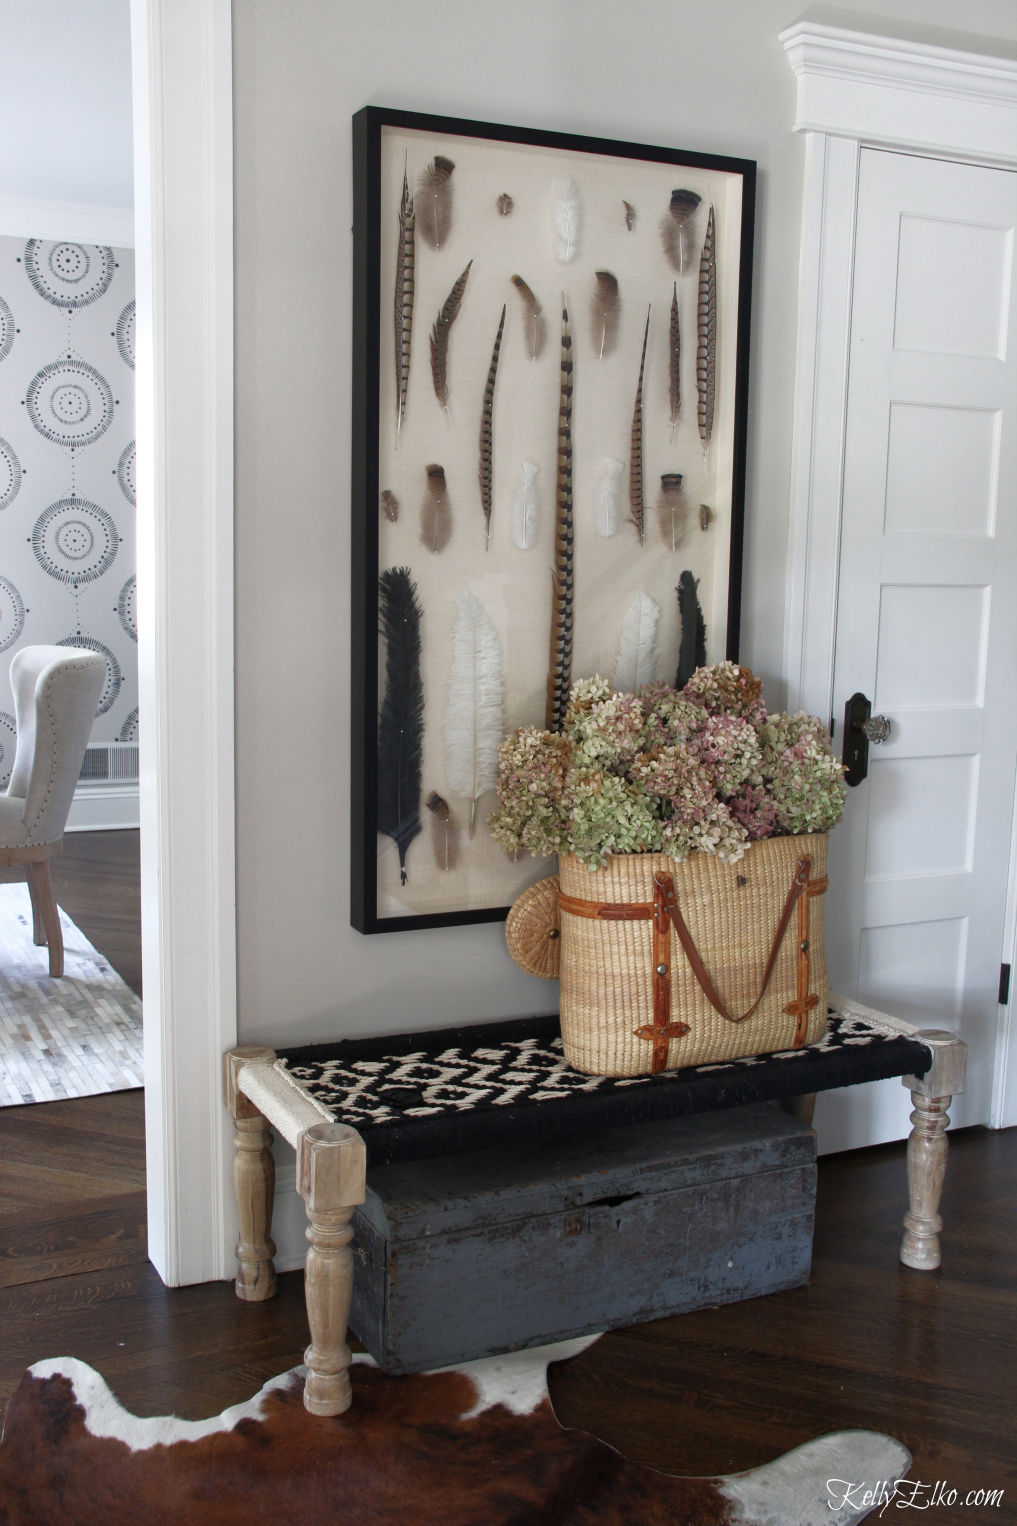 Love this foyer with huge feather art and basket of dried hydrangeas kellyelko.com #foyer #fallfoyer #entrydecor #hydrangeas #vintagedecor #falldecor